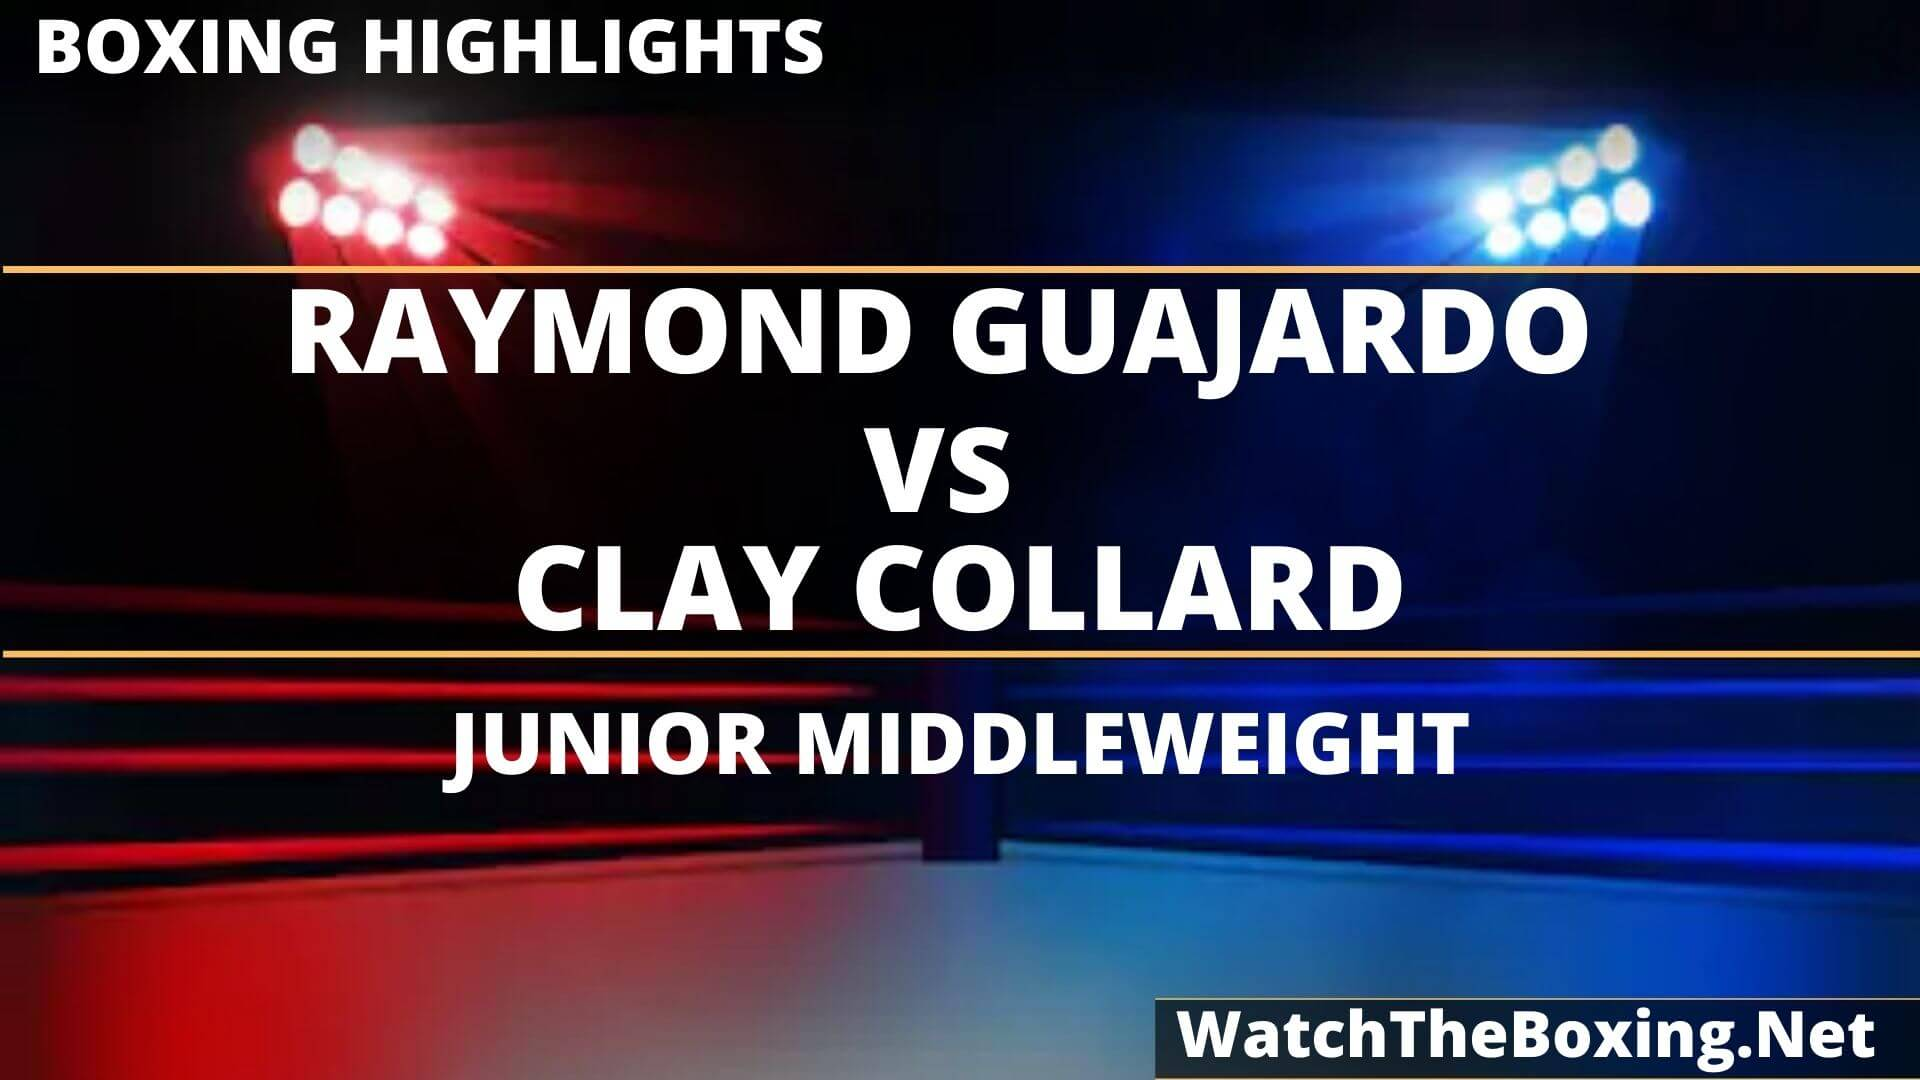 Raymond Guajardo Vs Clay Collard Highlights 2020